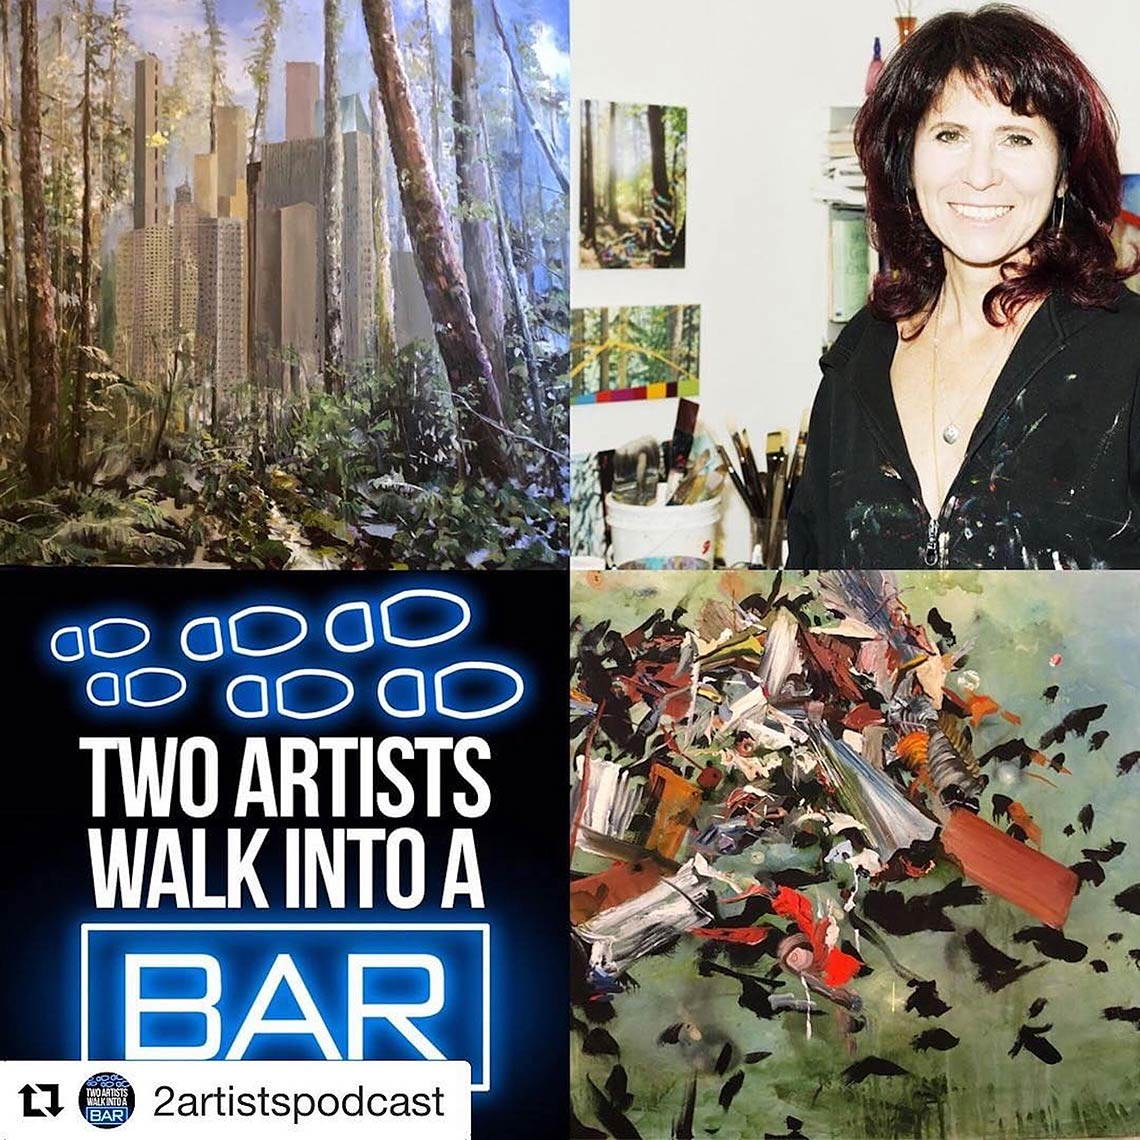 Podcast-recording-TwoArtists-walk-into-a-Bar2018